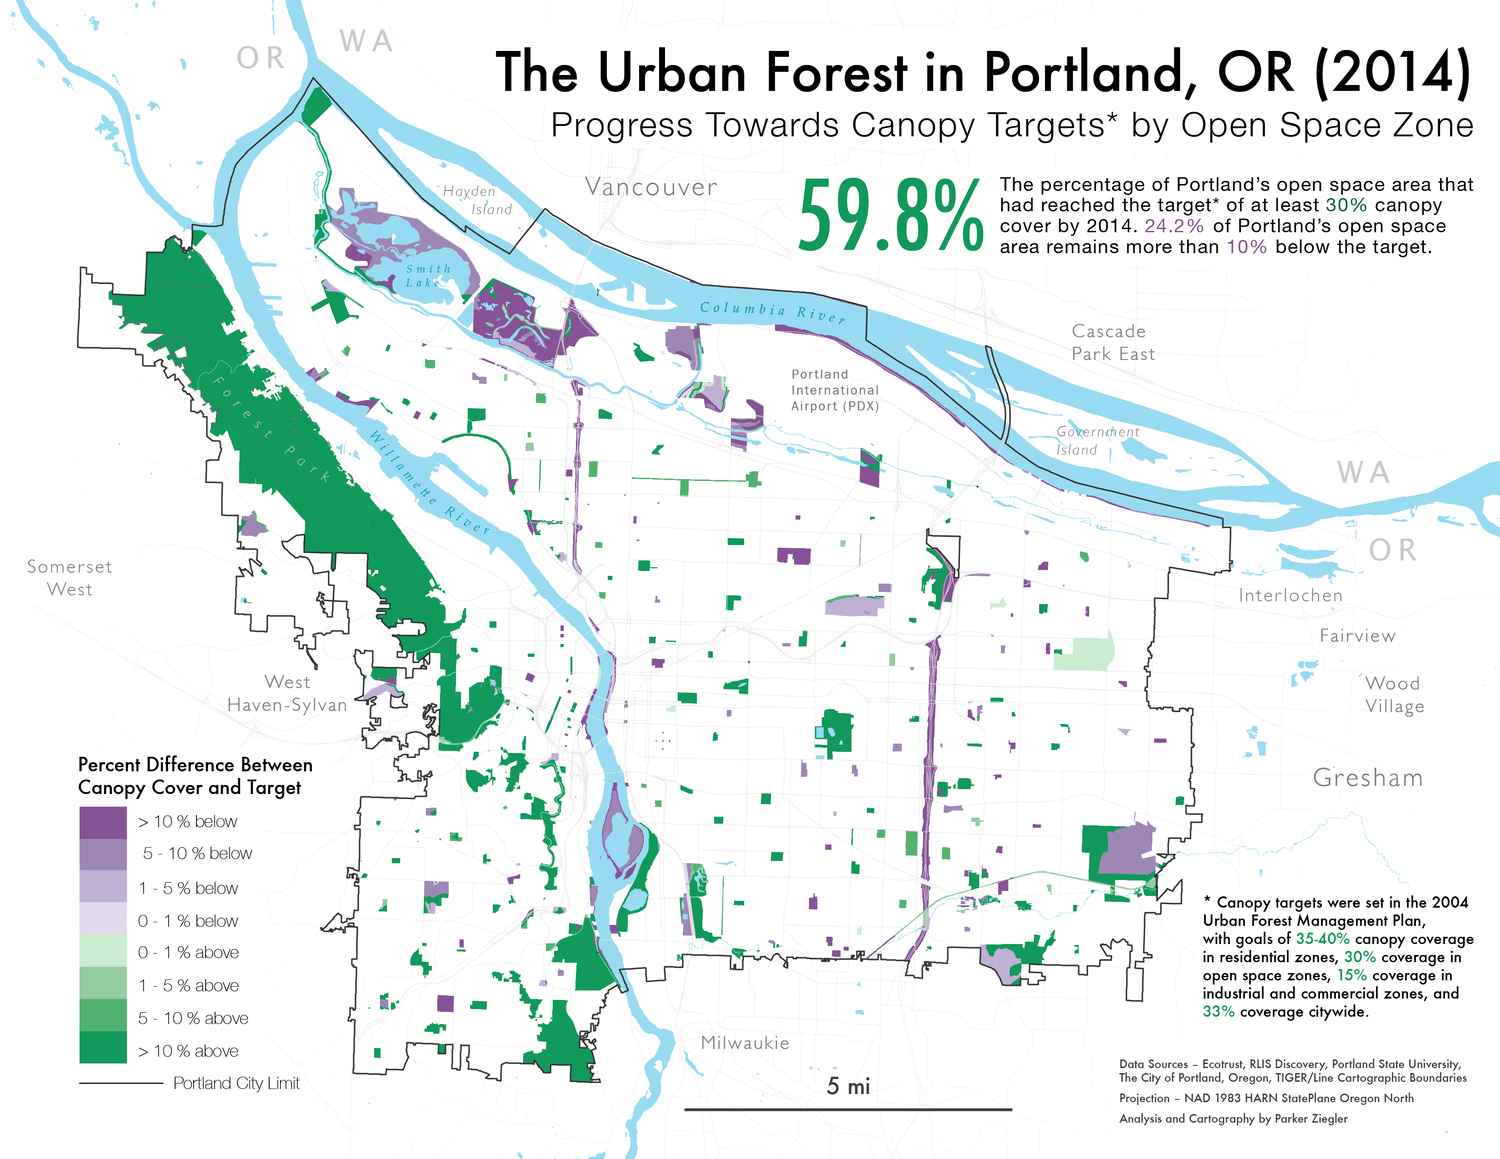 A map of Portland's urban canopy cover compared to city targets by Open Space Zone in 2014.